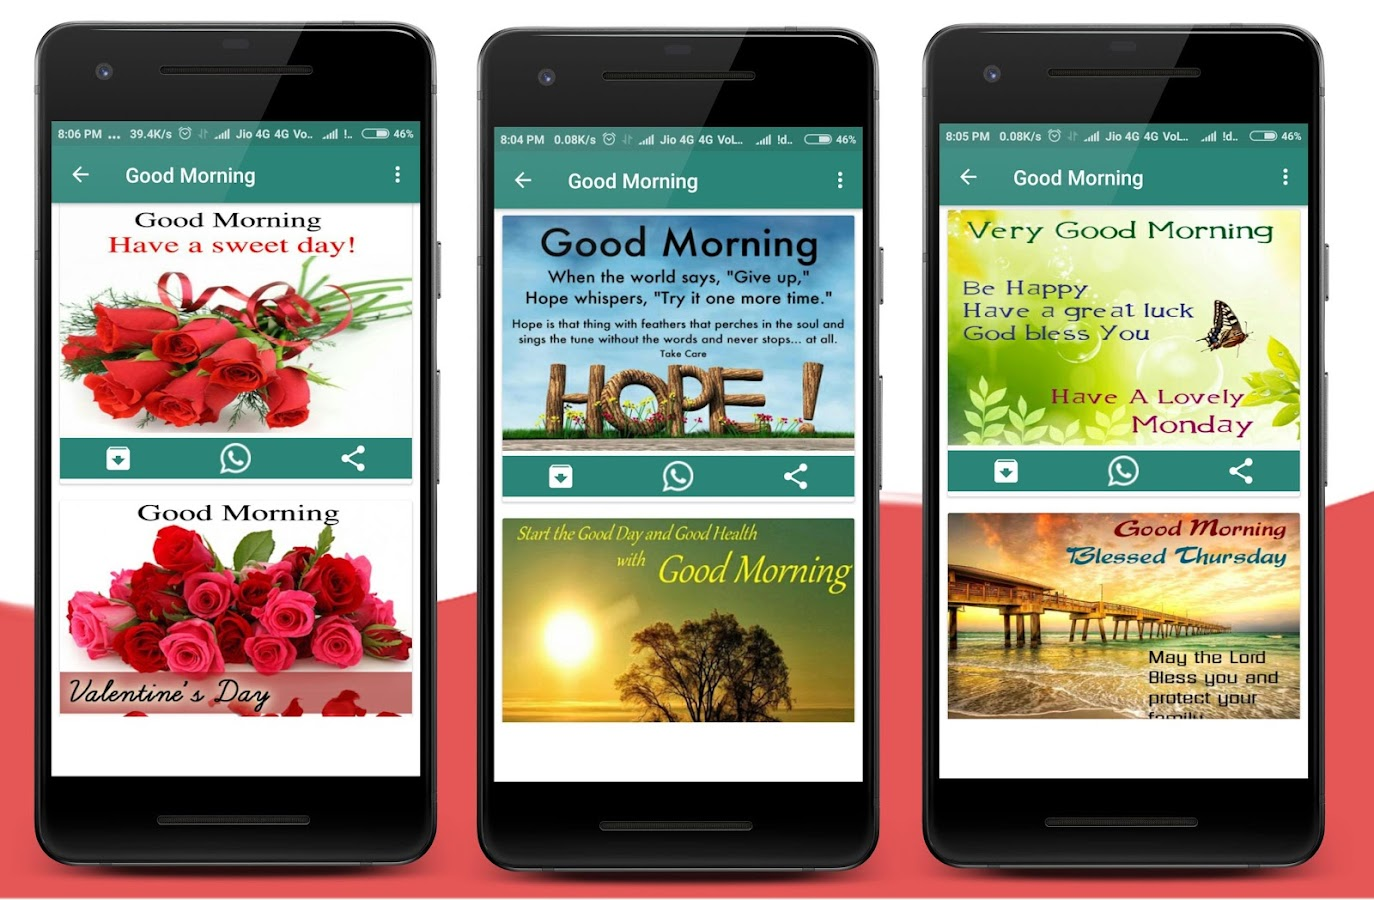 Good Morning Images And Messages 10 Apk Download Android